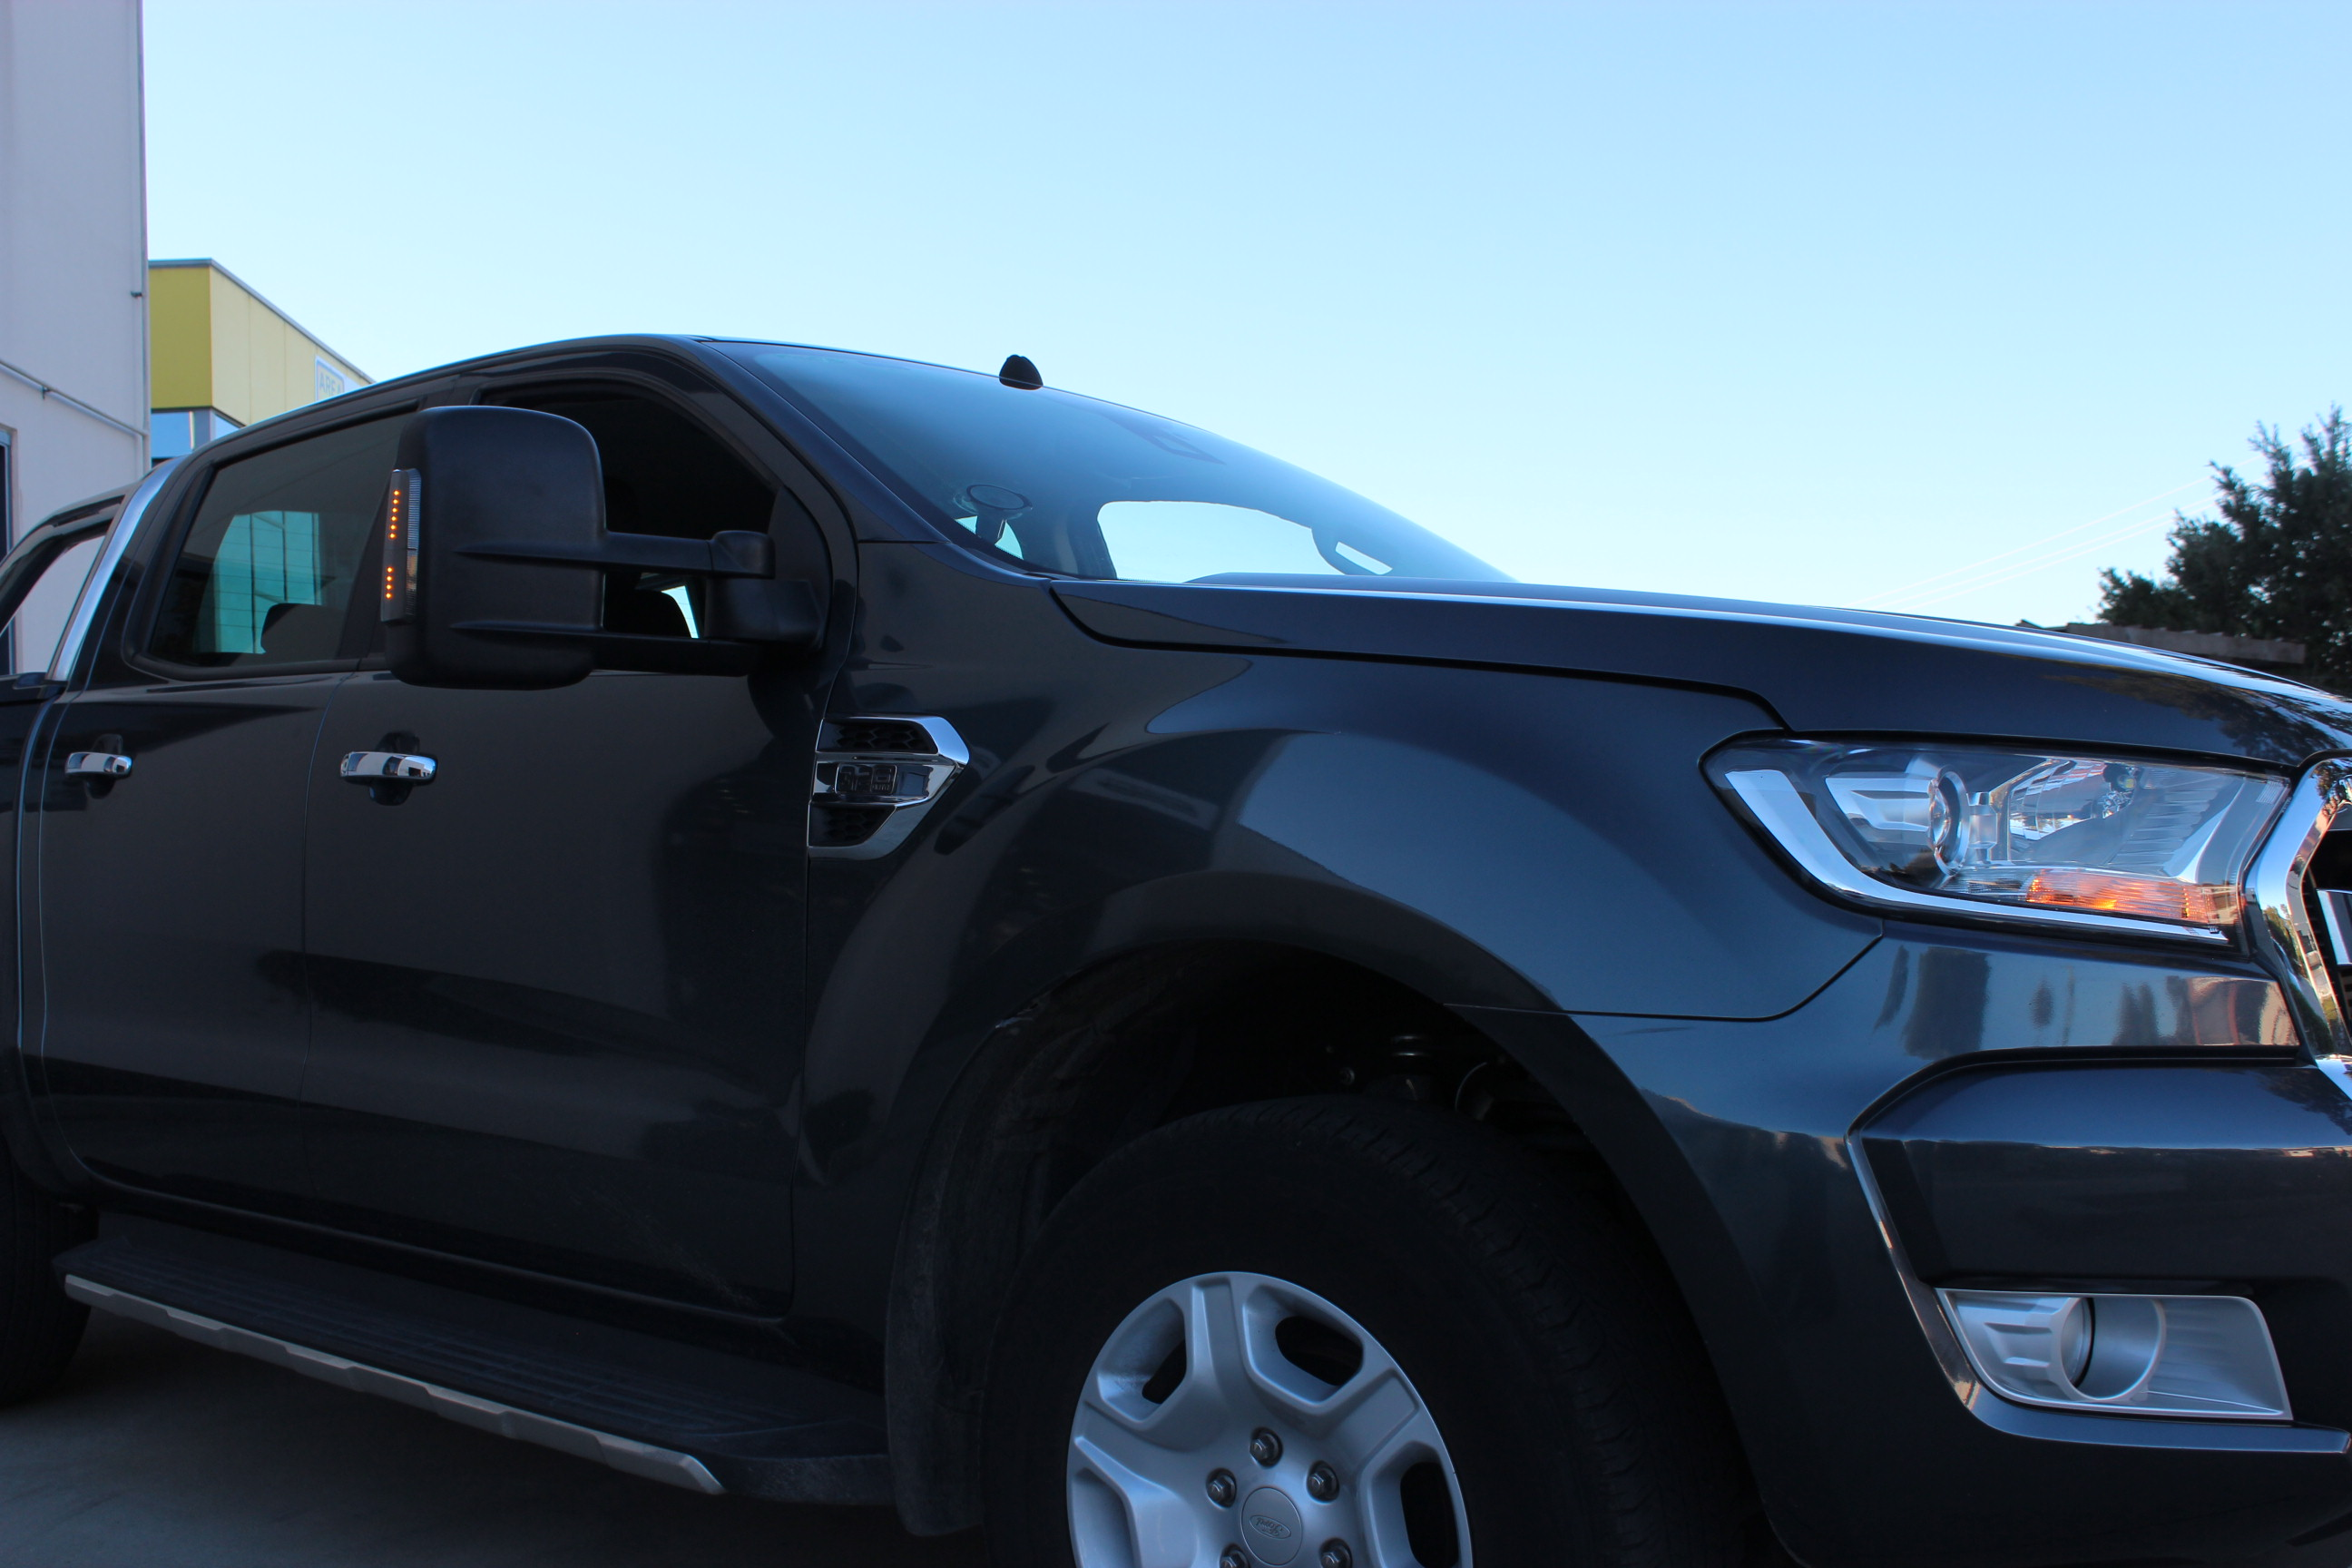 Ford Ranger Extendable Towing Mirrors